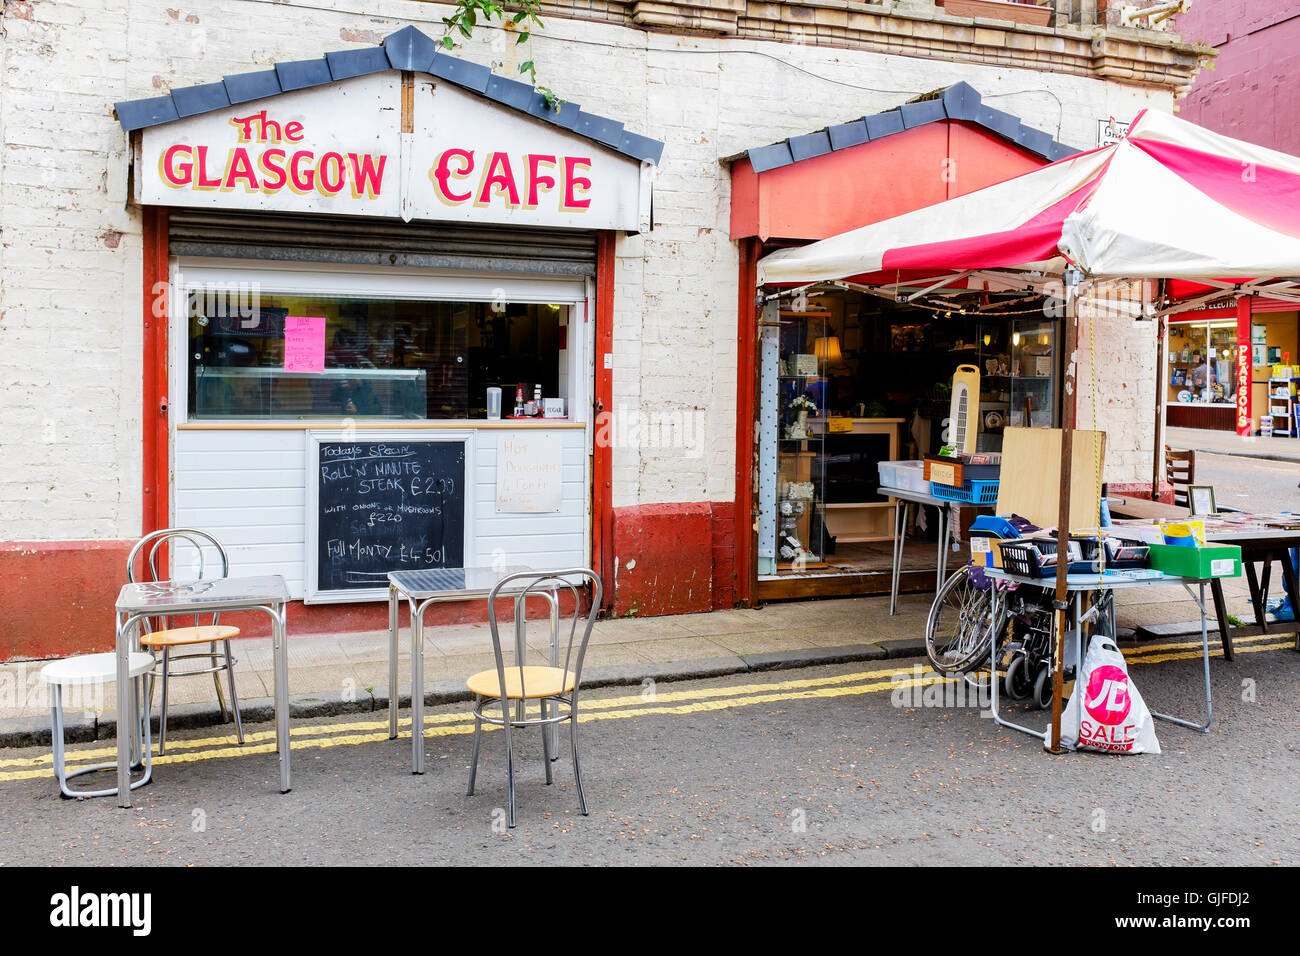 Small cafe and side shop selling secondhand goods, The Barras flea market, Glasgow, Scotland, UK - Stock Image